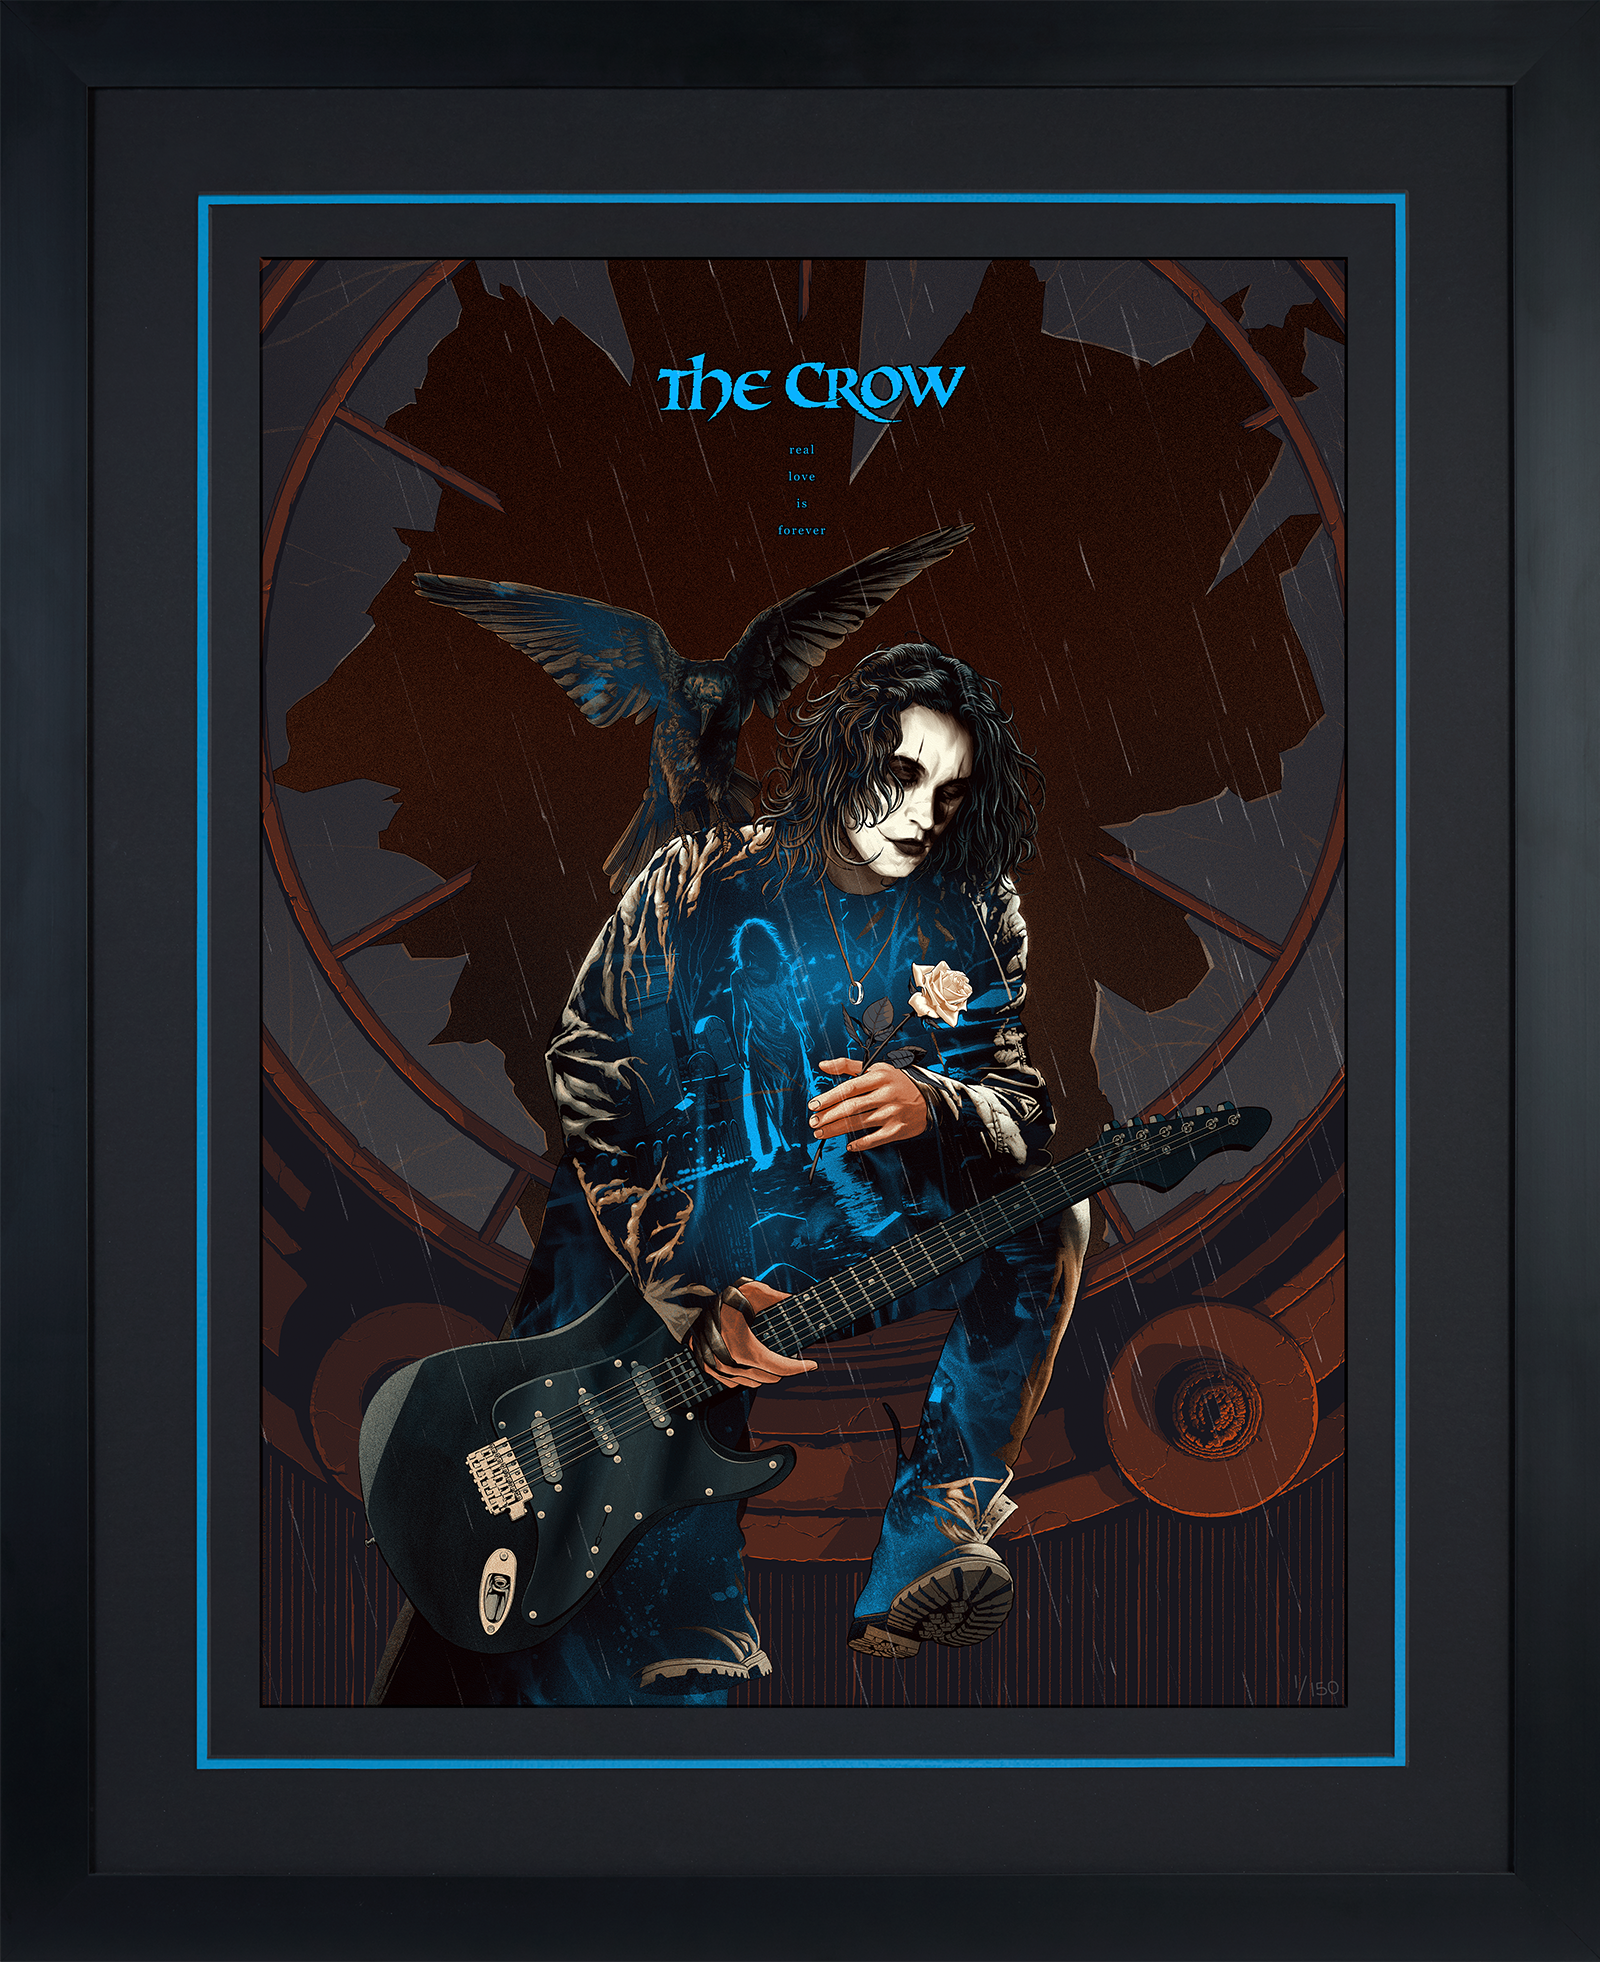 Sideshow Collectibles The Crow: Real Love Is Forever Variant Art Print